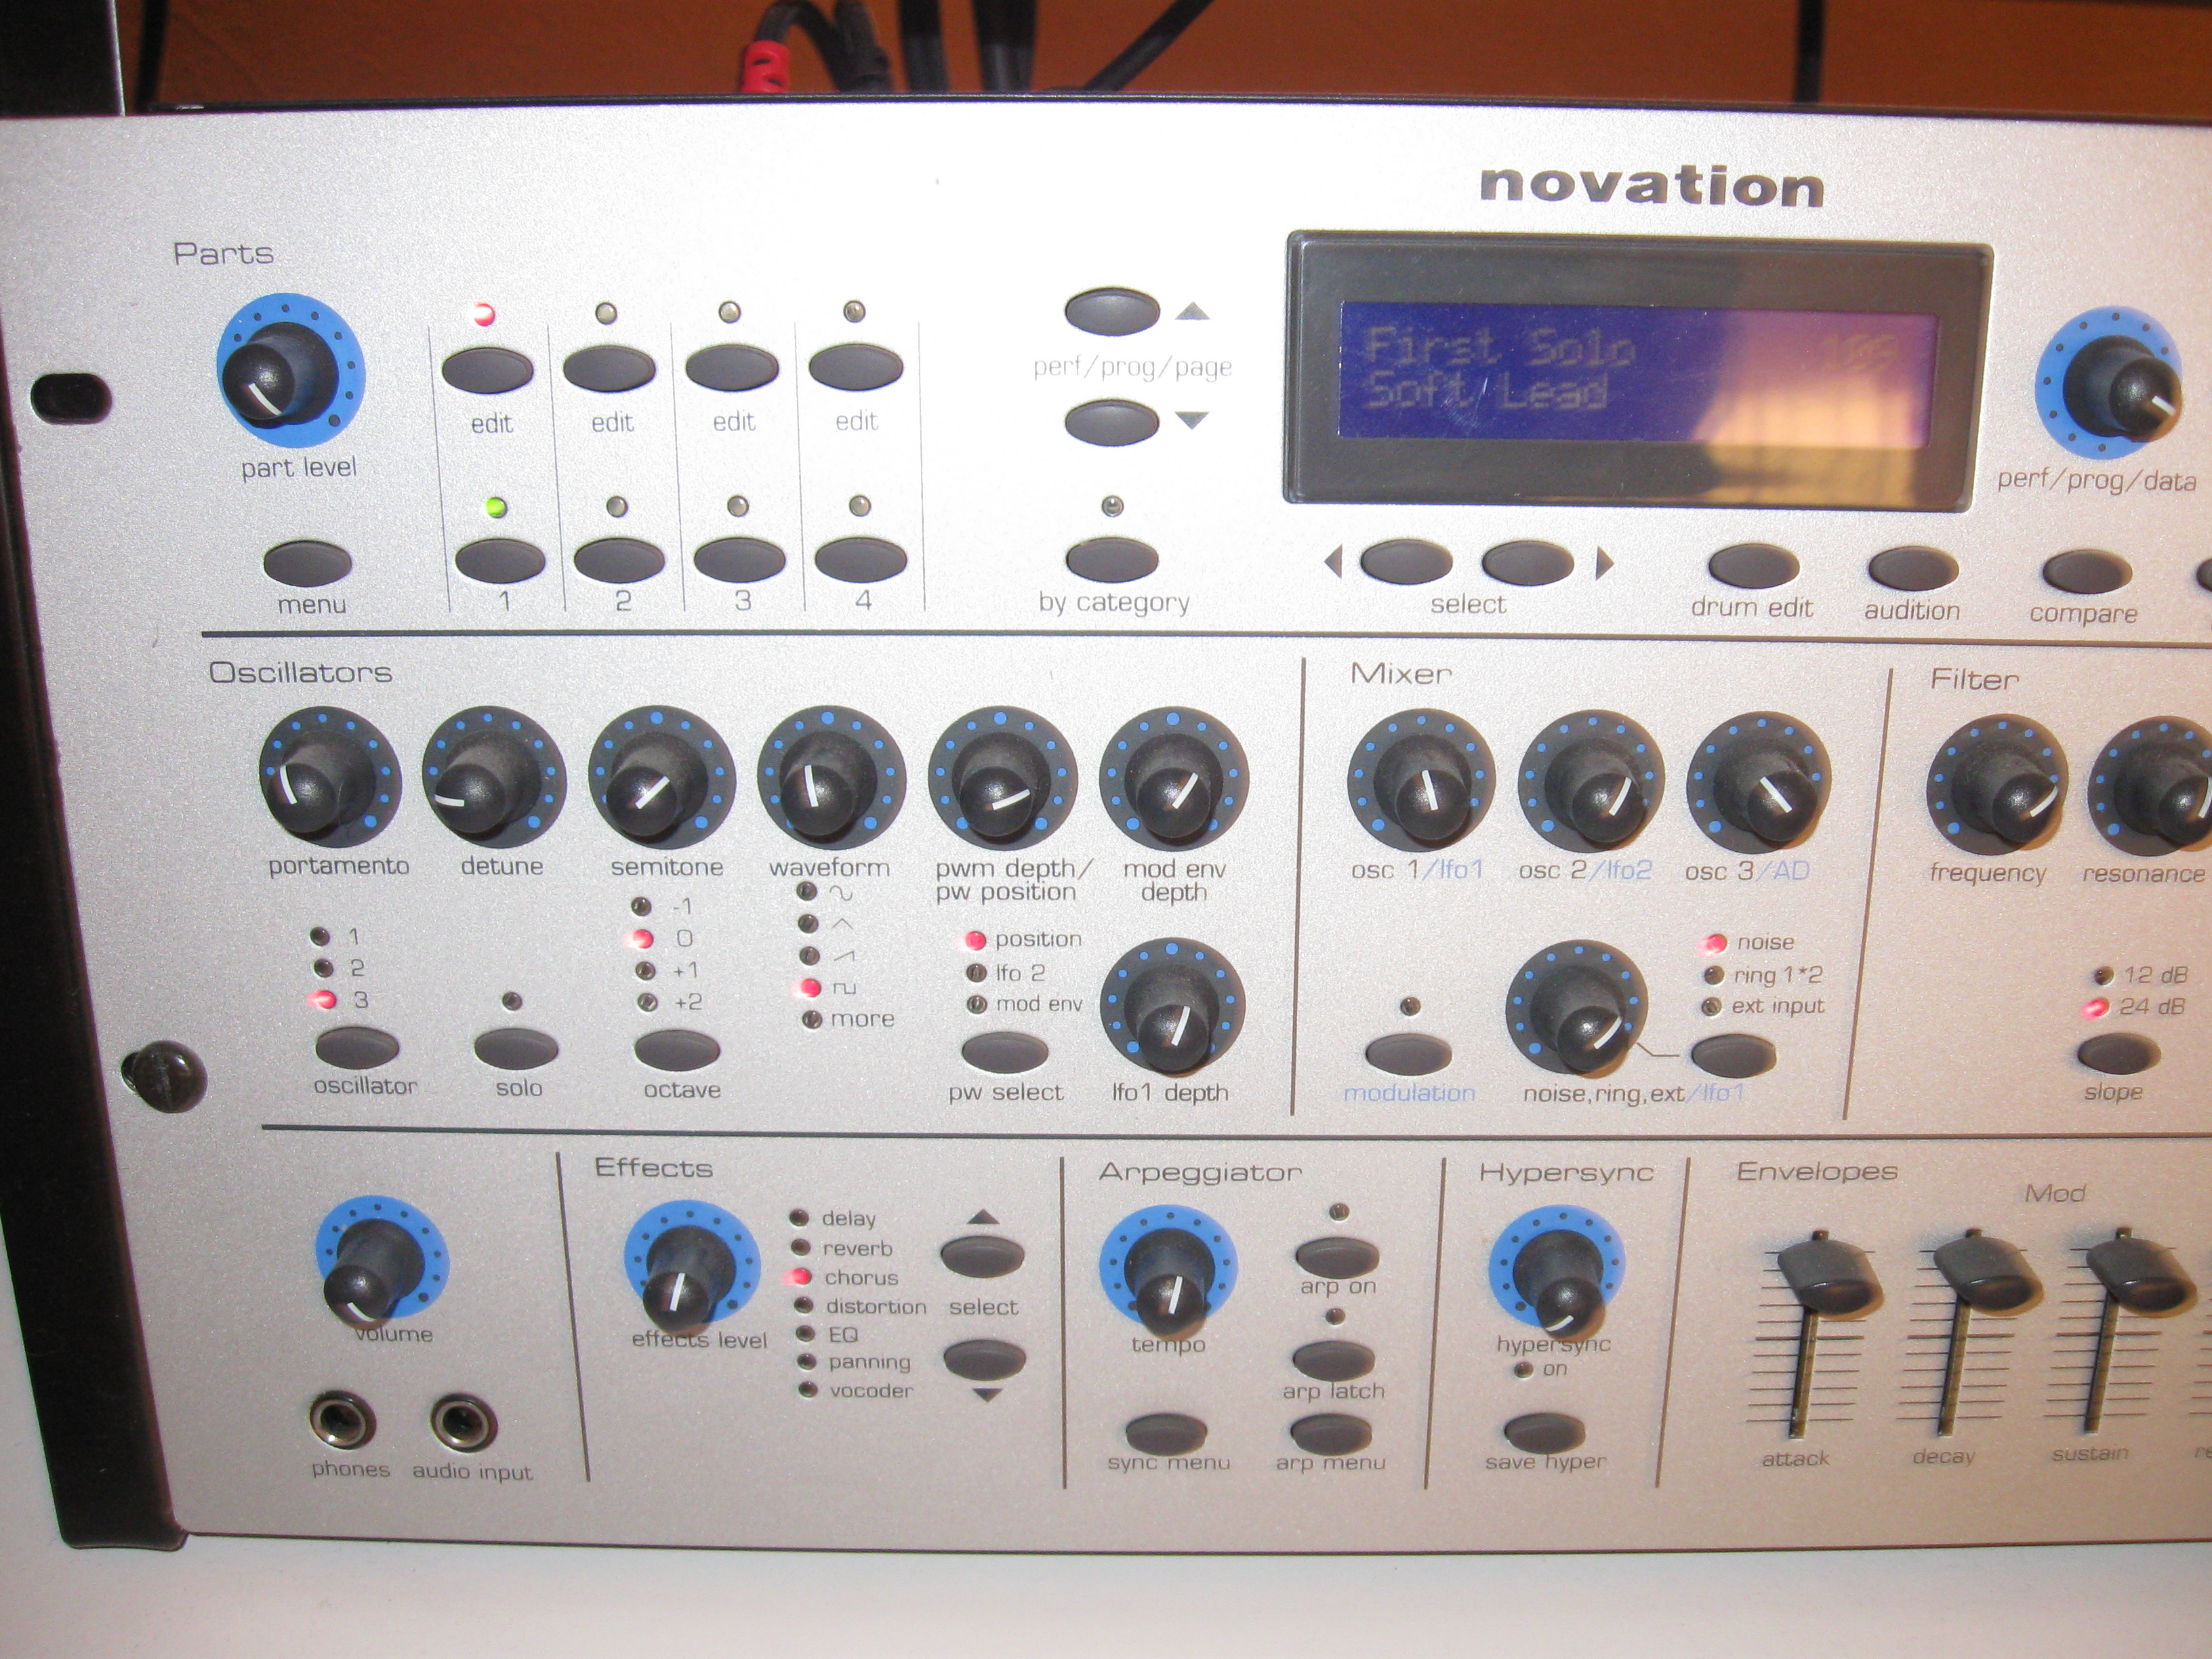 novation bass station rack manual